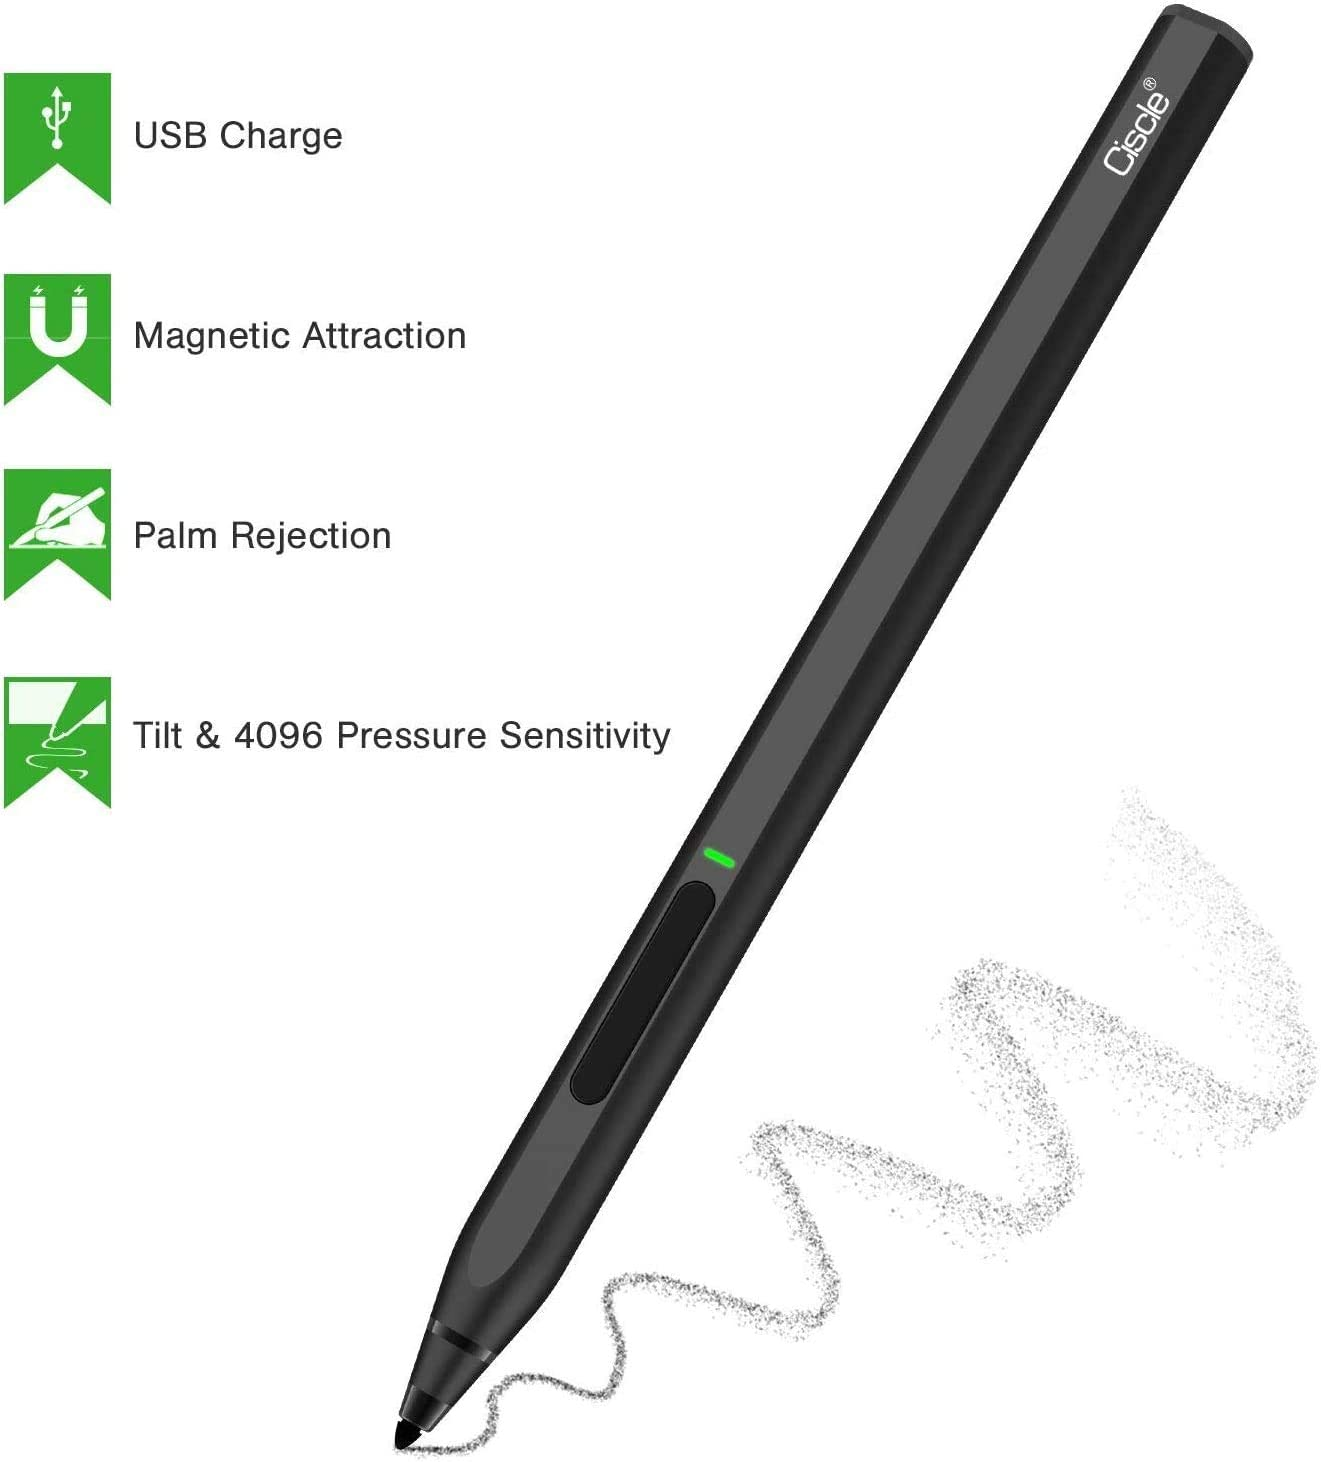 Ciscle High-Efficiency Charge Digital Stylus Pen with 4096 Levels of Pressure Sensitivity and Palm Rejection Function, Tilt, Magnetic Attachment Digital Pen for Surface Pro/Go/Book-Black